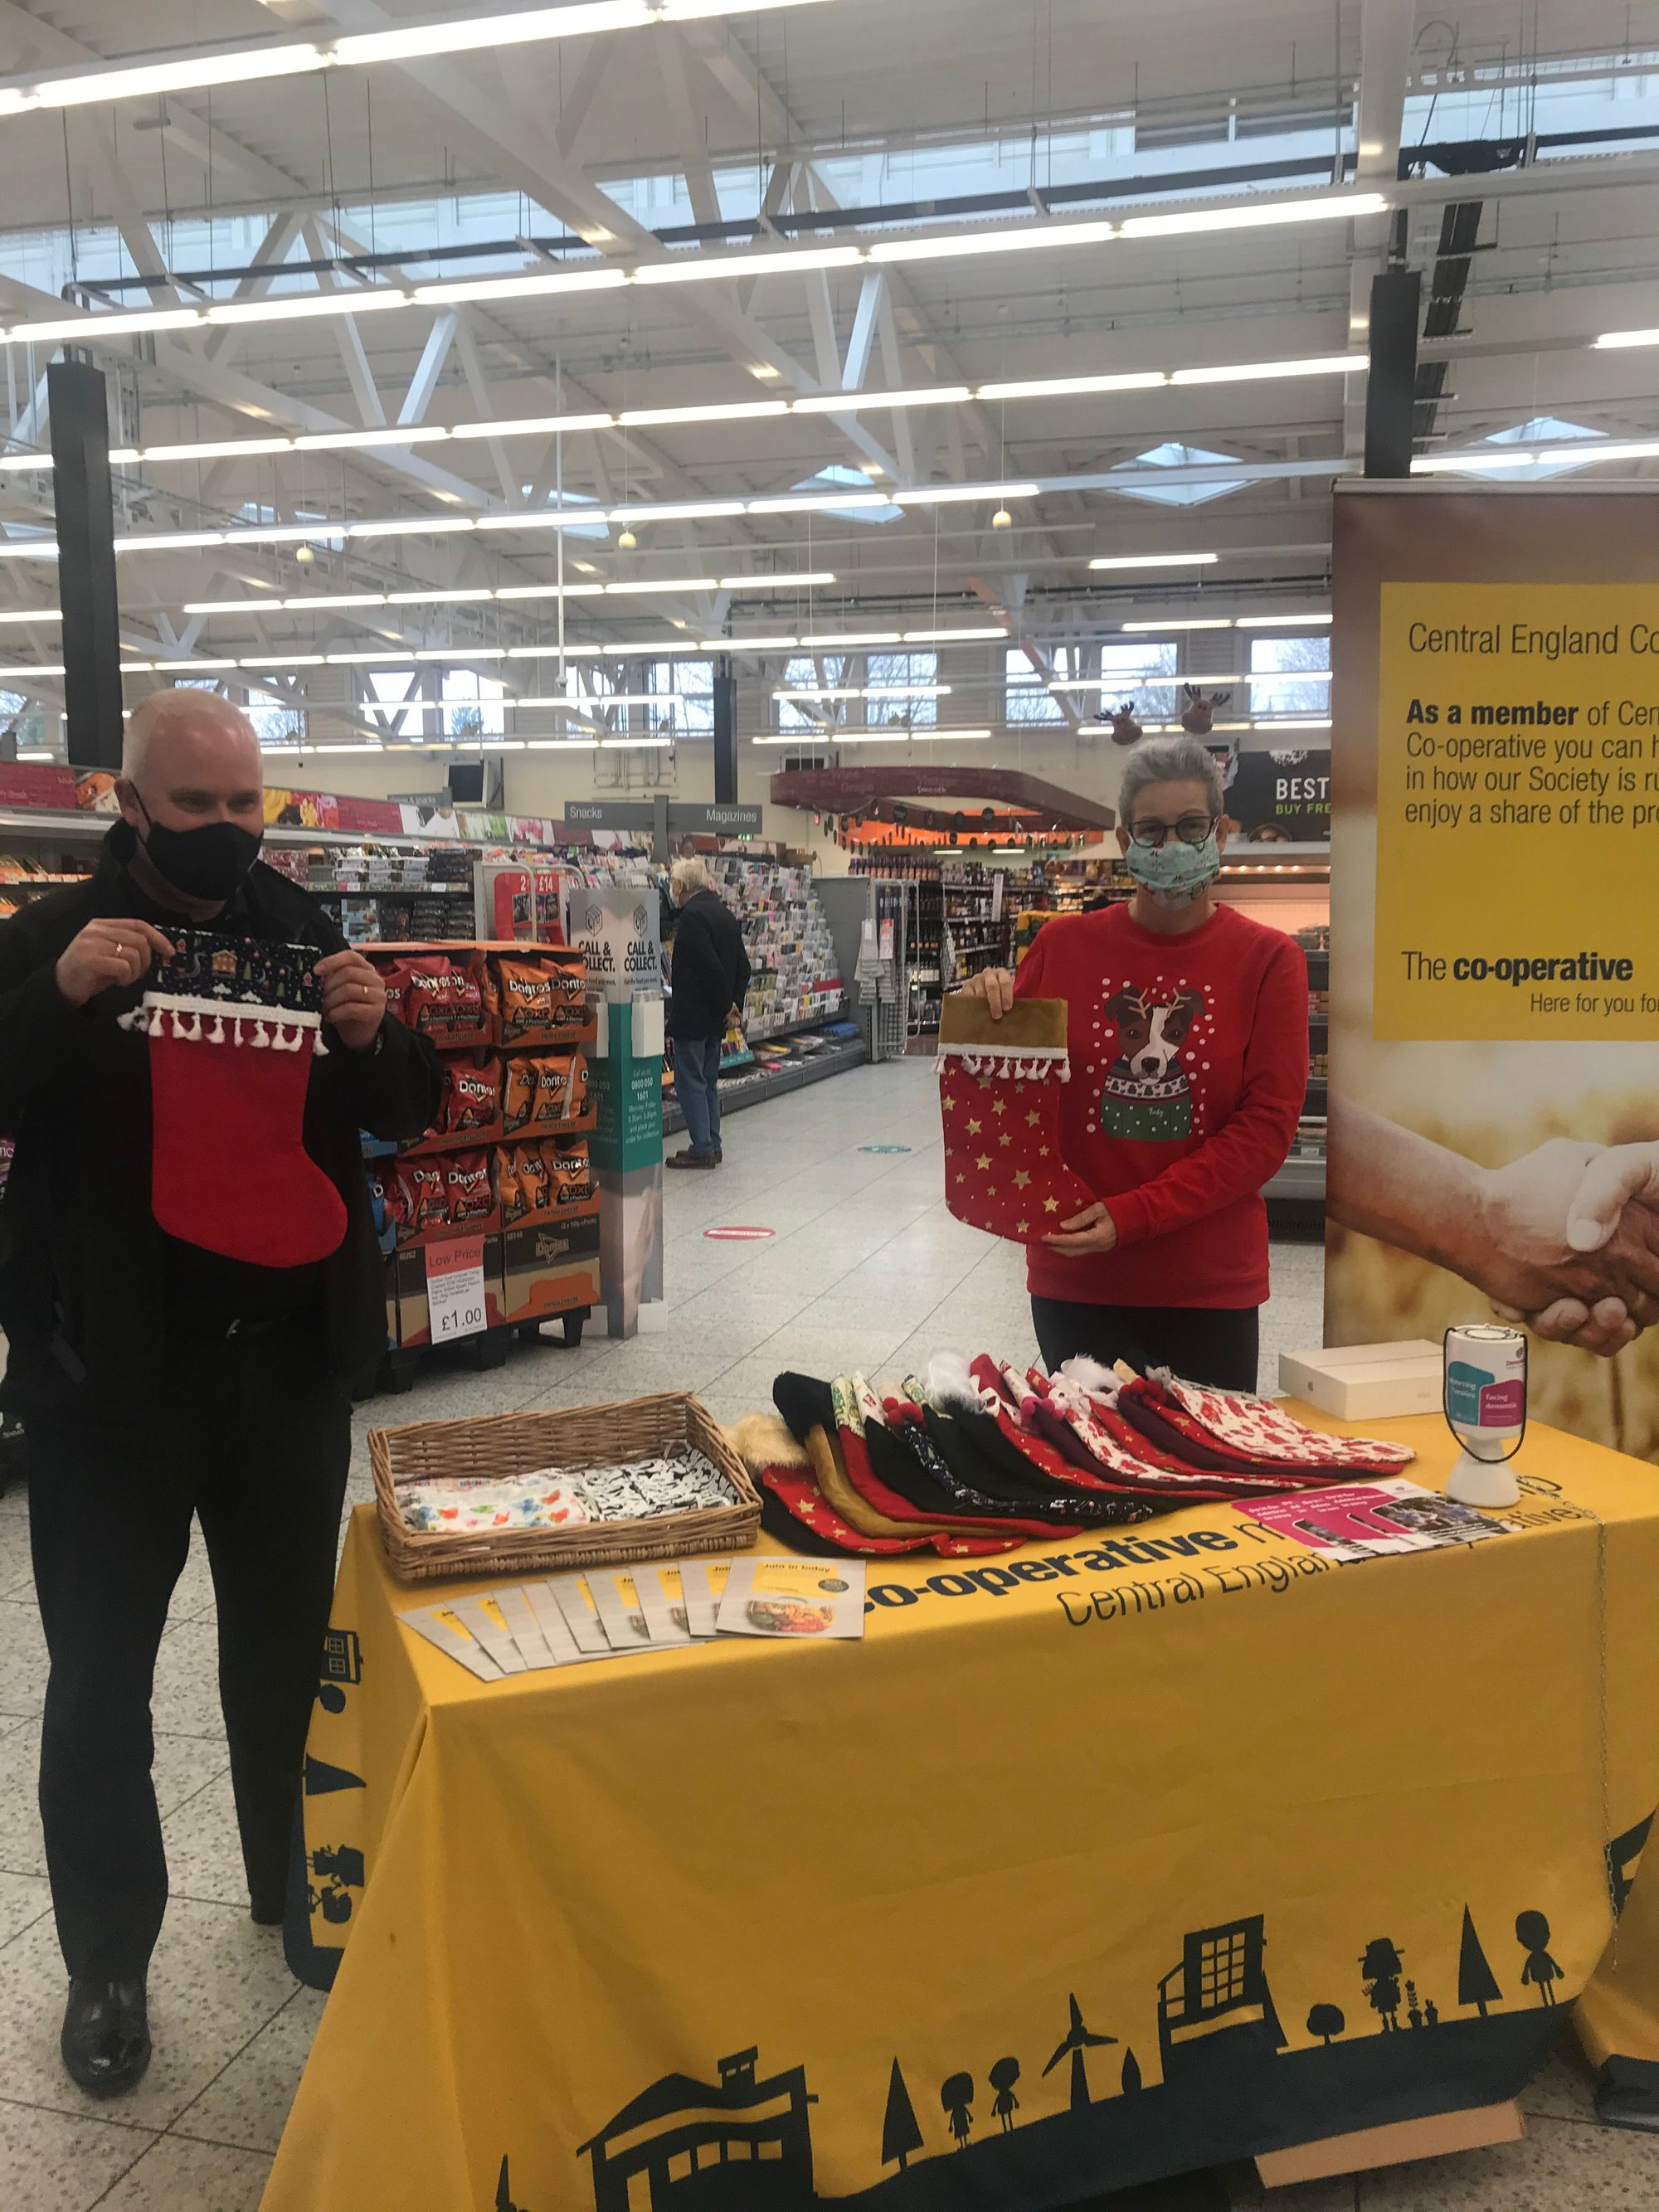 MCC Support Stores in raising funds for Dementia UK